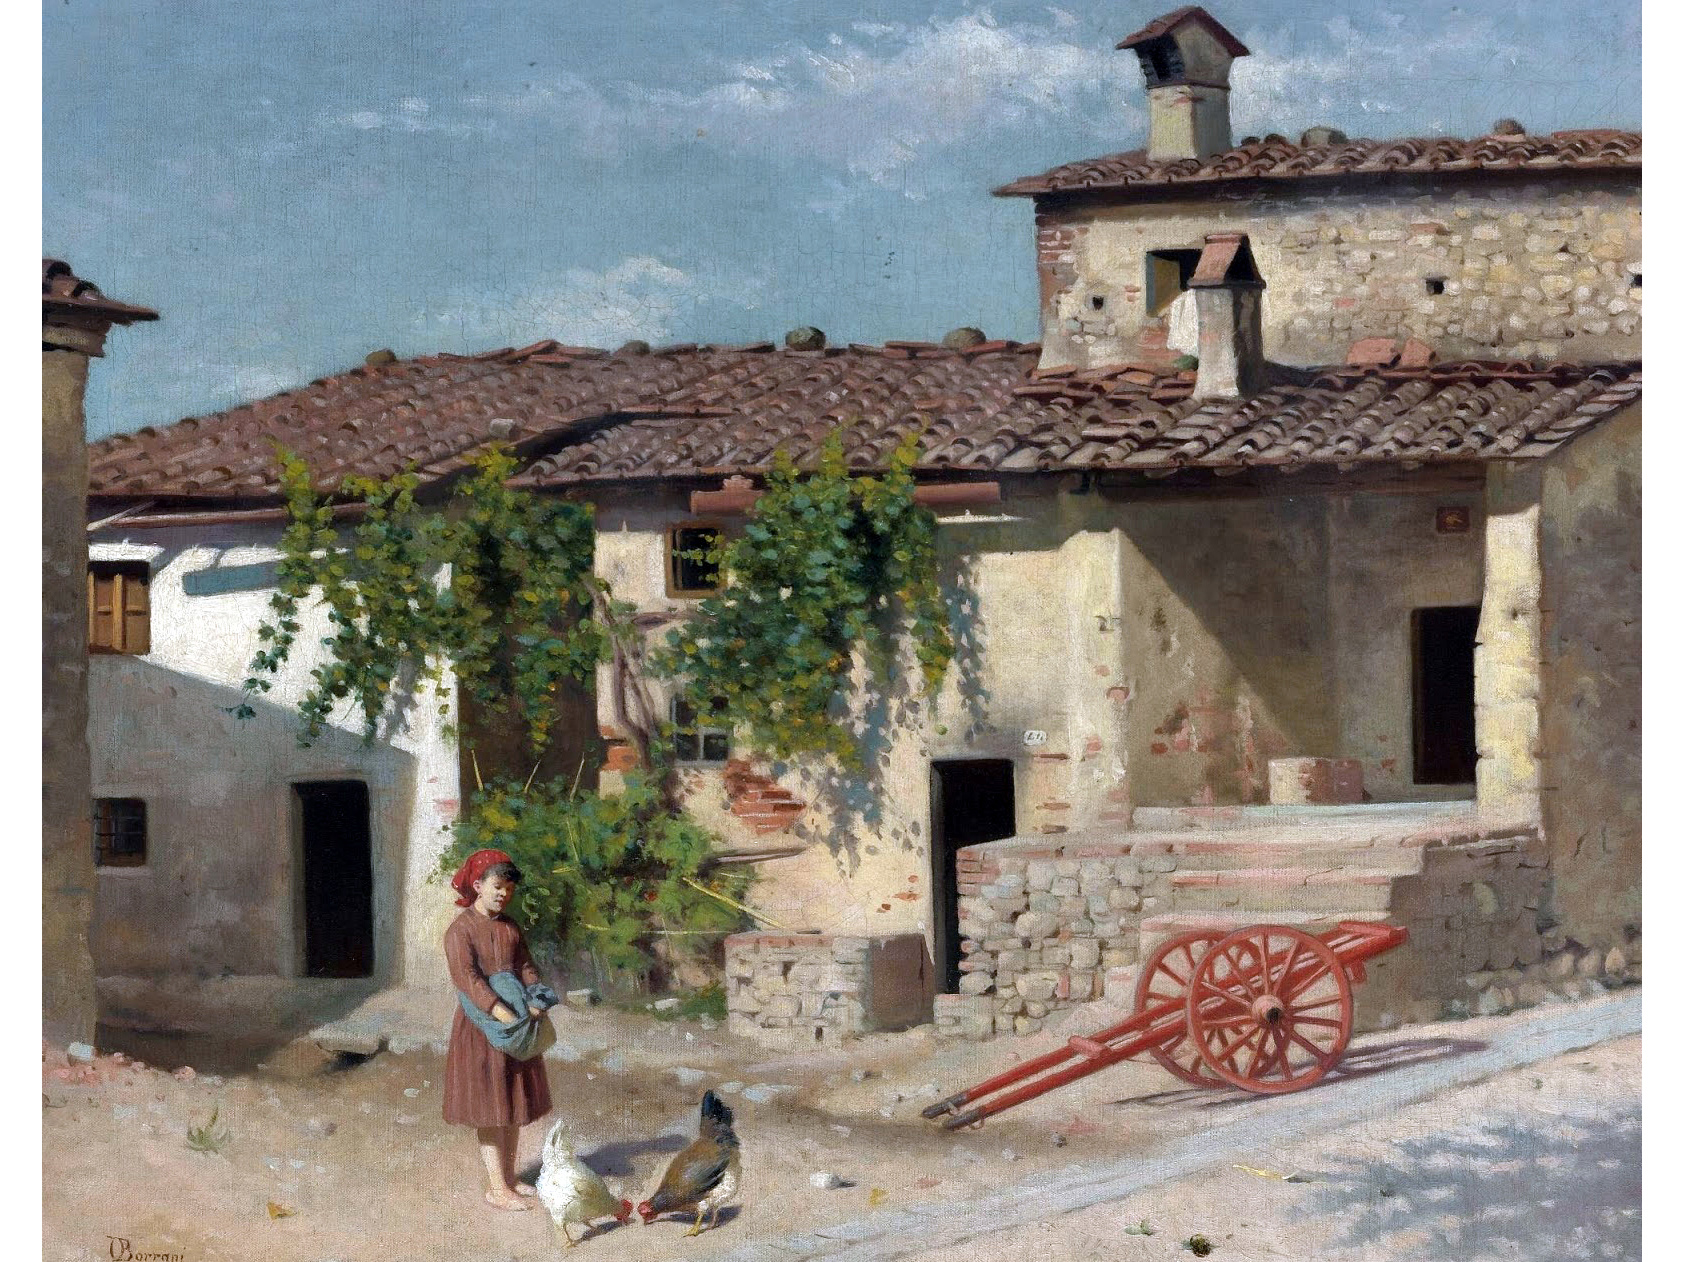 Odoardo Borrani (Pisa 1834 - Firenze 1905) Feeding the chickens